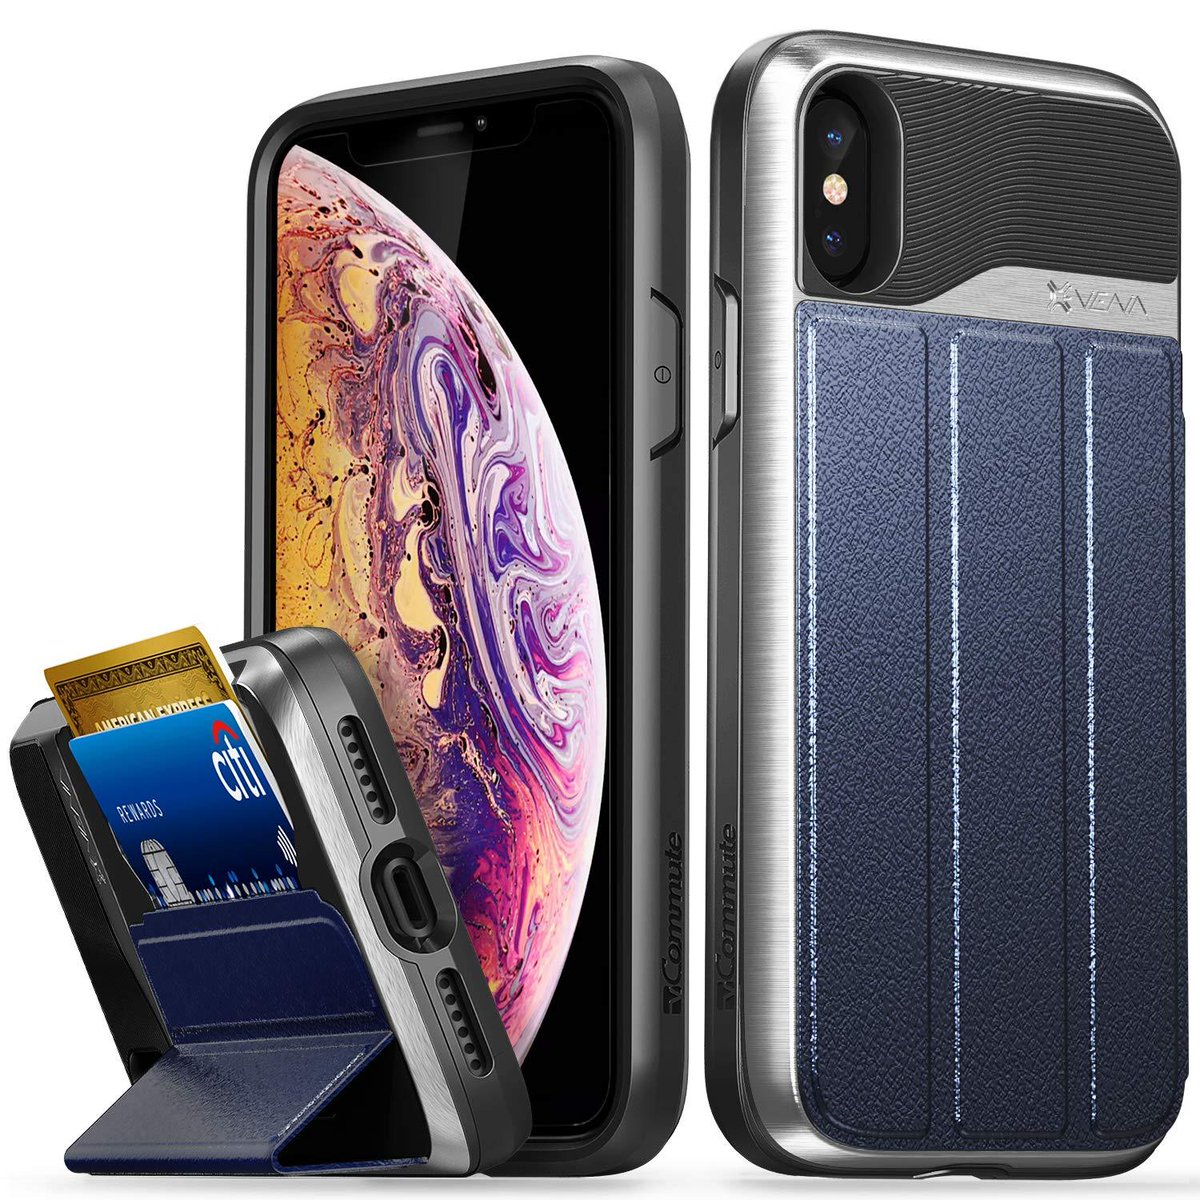 Vena iPhone XS/X Wallet Case, [vCommute] [Military Grade Drop Protection] Flip Leather Cover Card Slot Holder Compatible with iPhone XS/X - Silver (PC) / Blue (Leather) / Black (TPU)  ➤ $ 39.99.  ➤ https://pooo.st/i7Ctk pic.twitter.com/ih3w1Q5Gqf